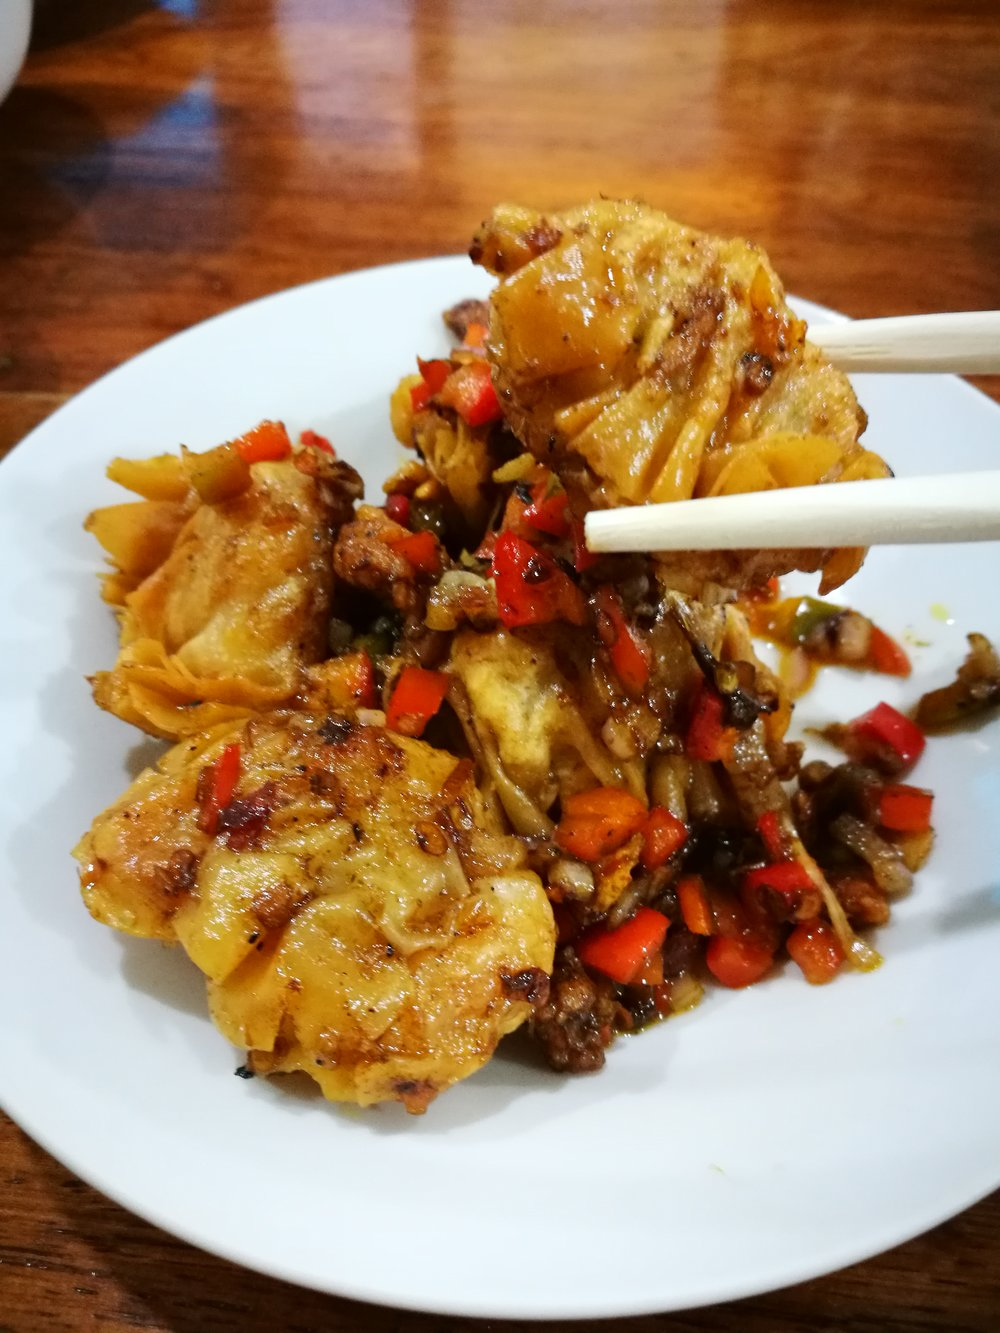 Spicy fried dumplings at Caitlyn's Dimsum